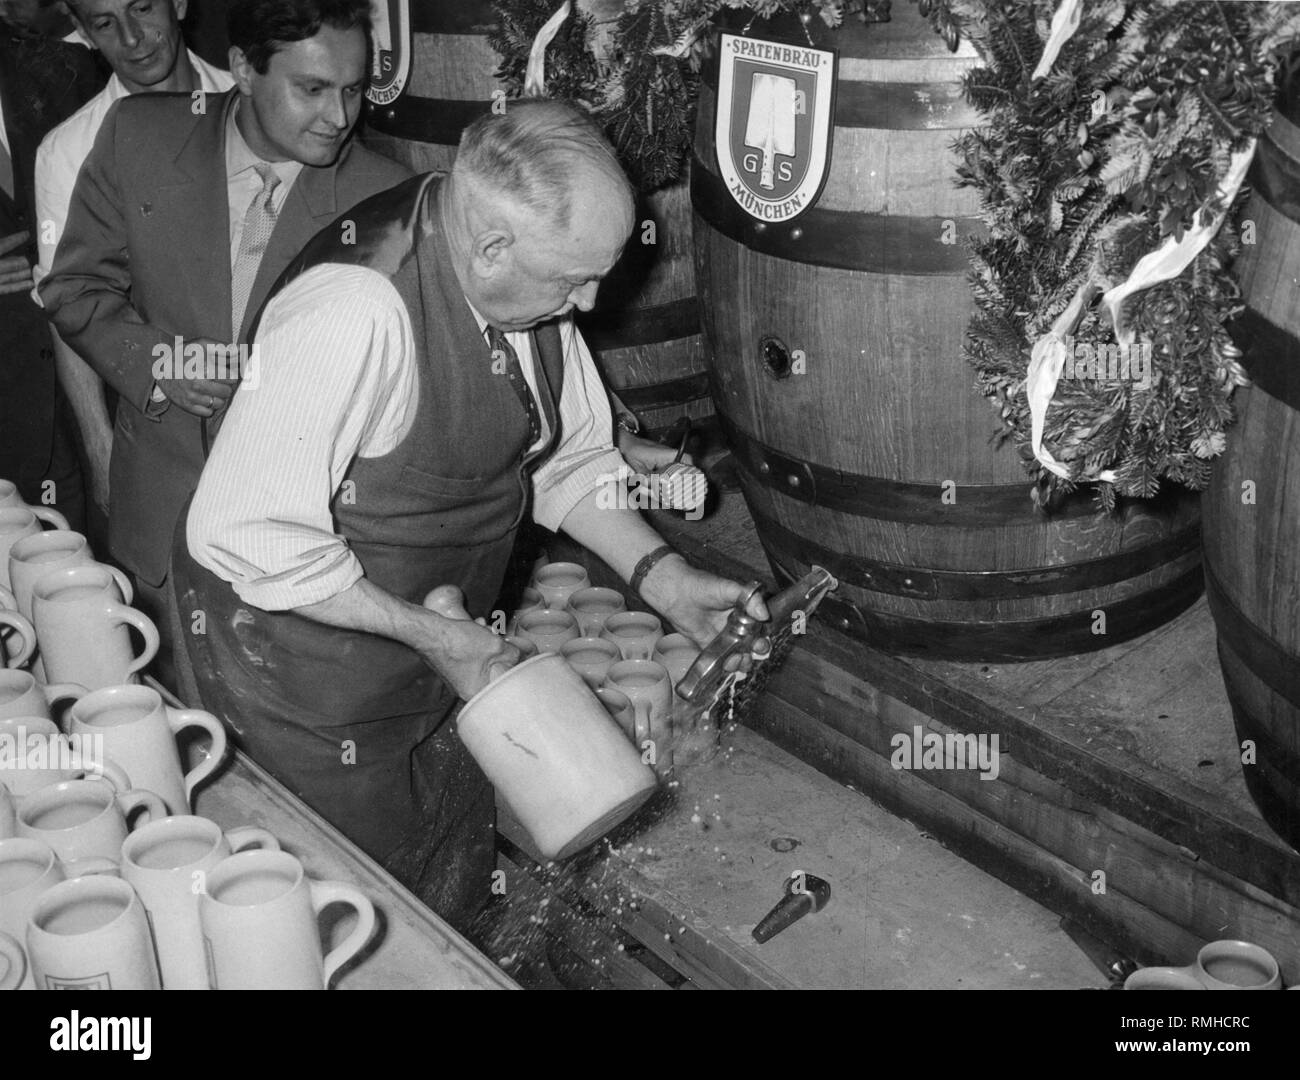 The mayor of Munich, Thomas Wimmer, taps the keg at the Salvator tasting. - Stock Image